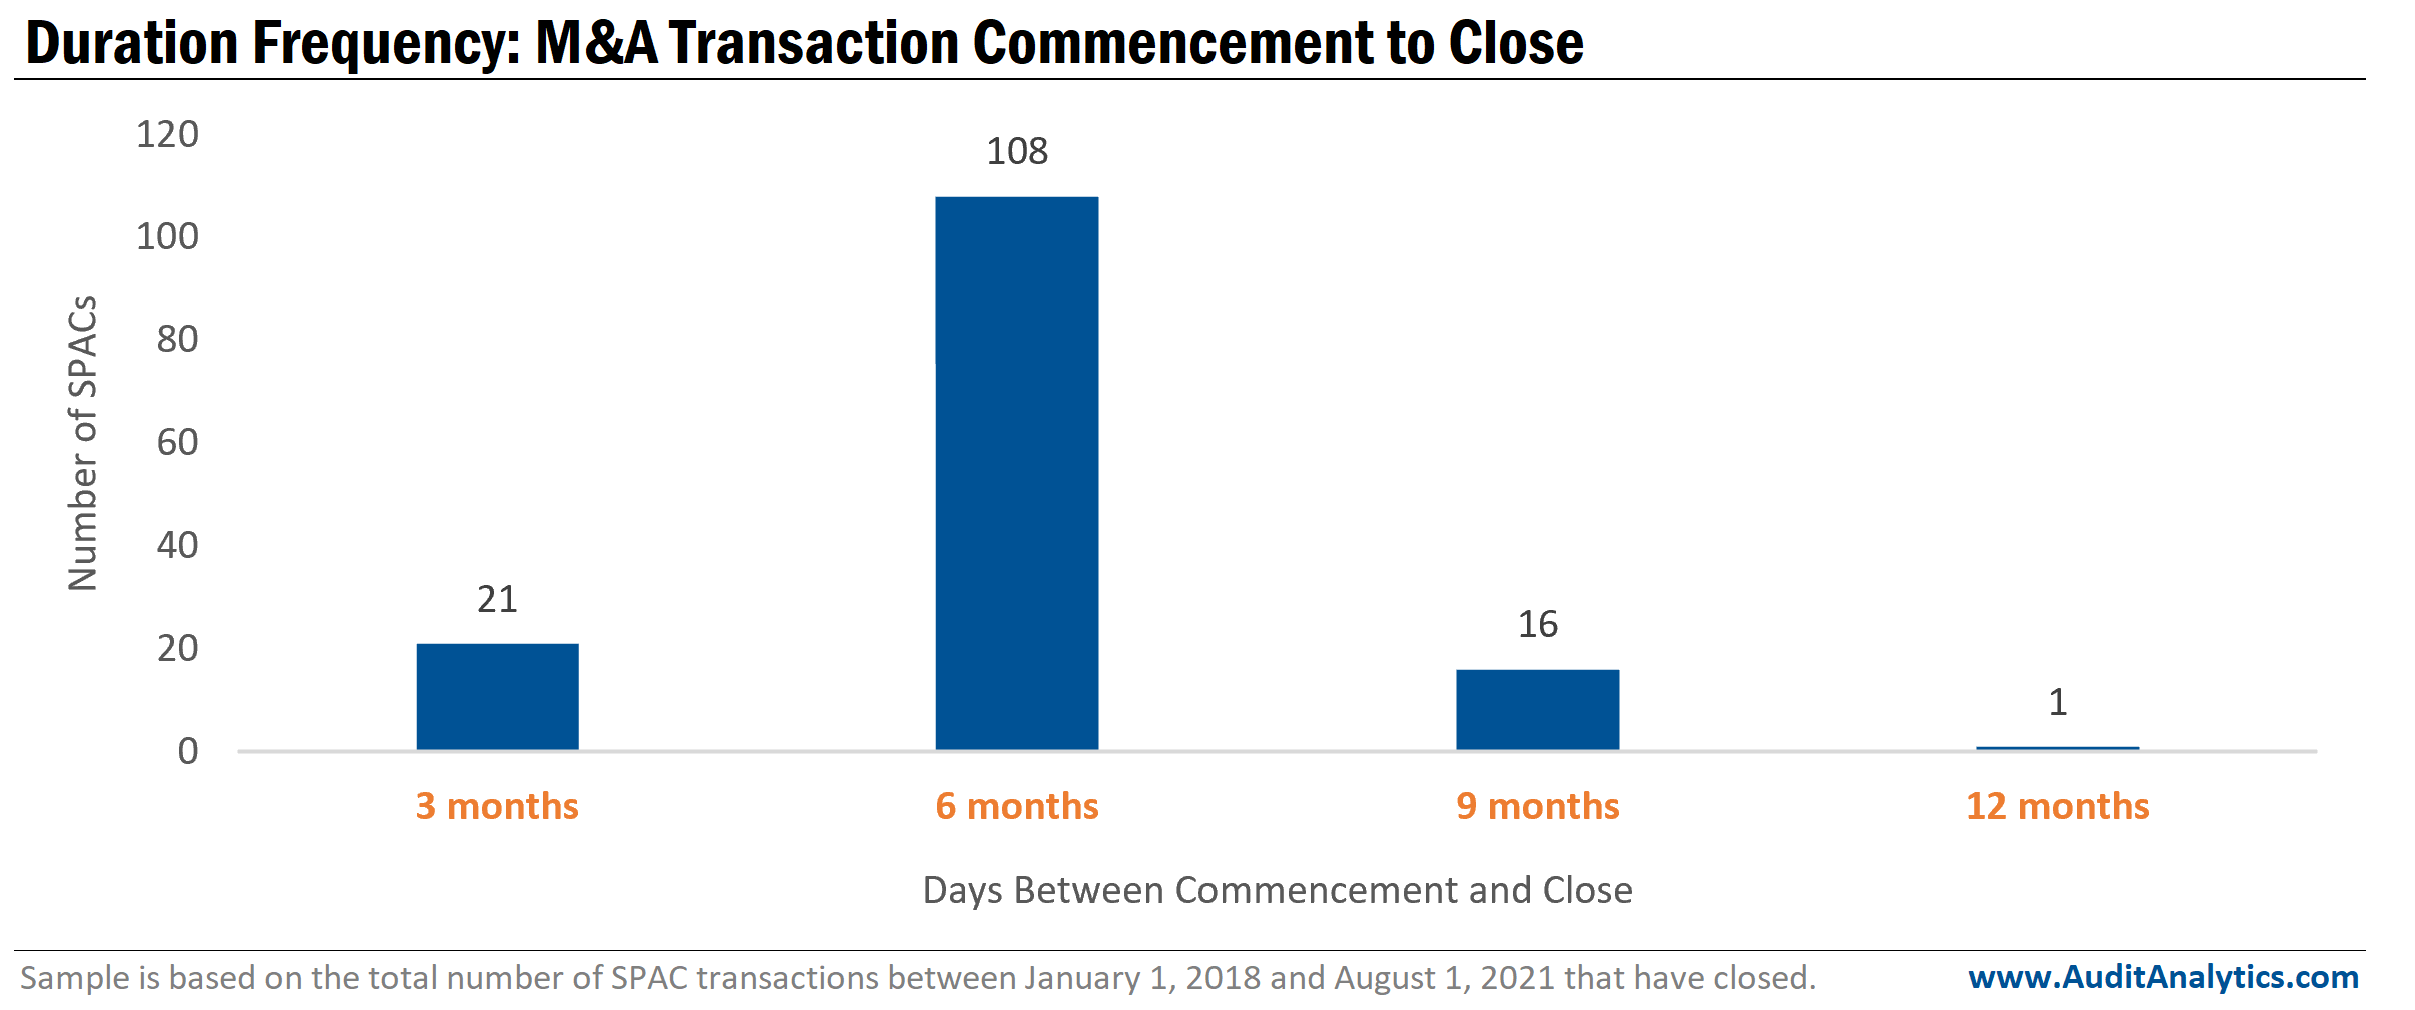 Duration frequency: SPAC M&A Transaction Commencement to Close